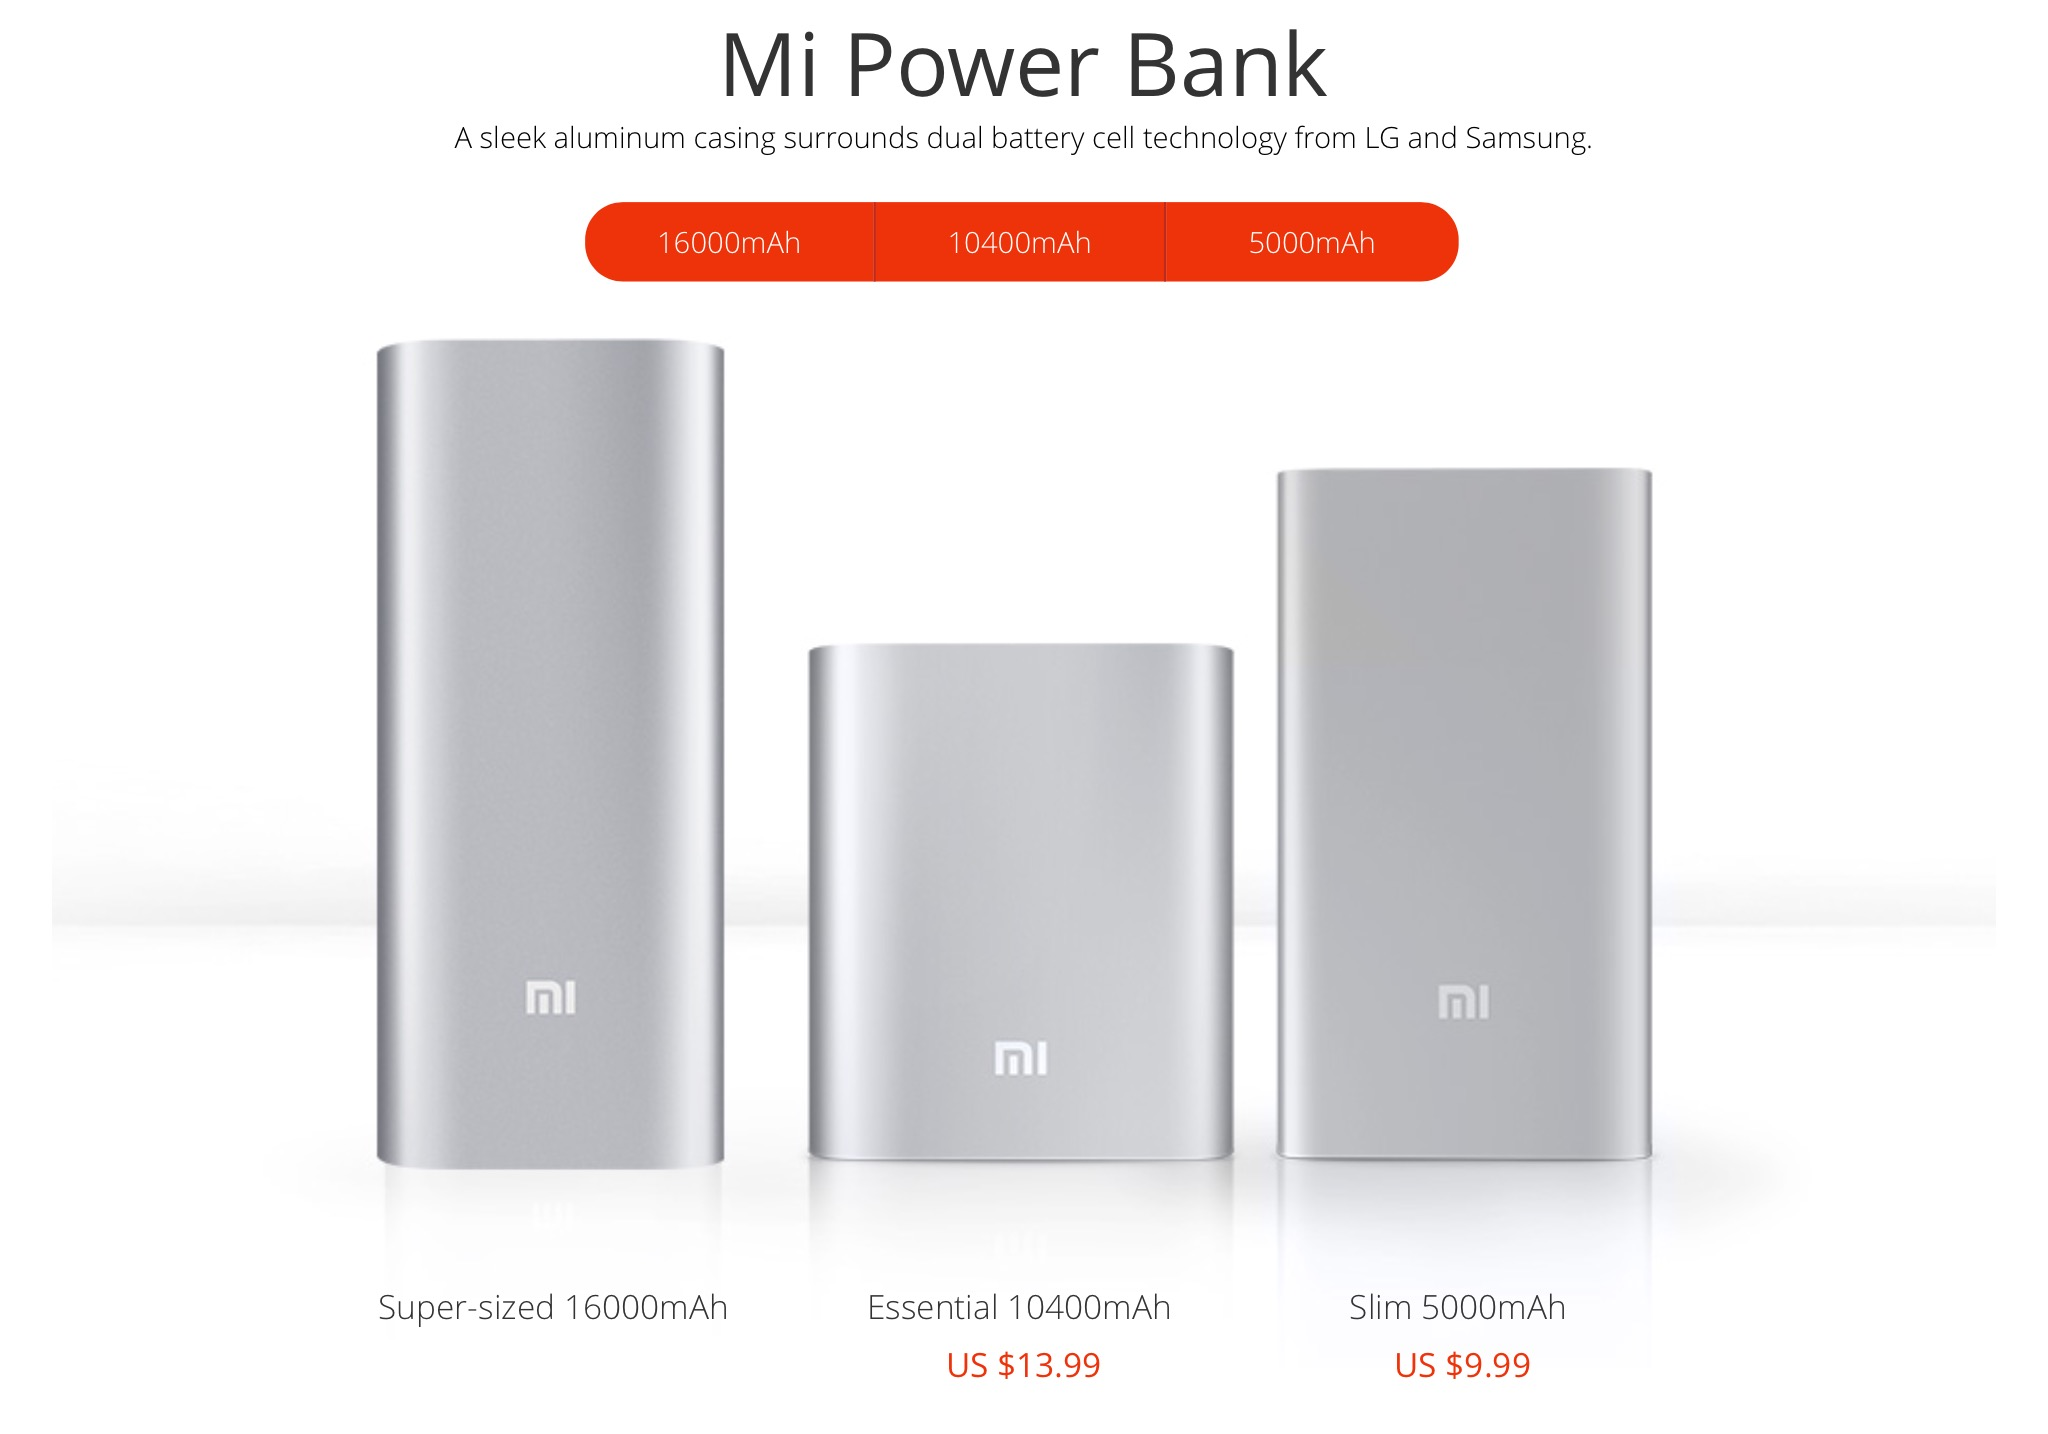 Mi Power Banks family